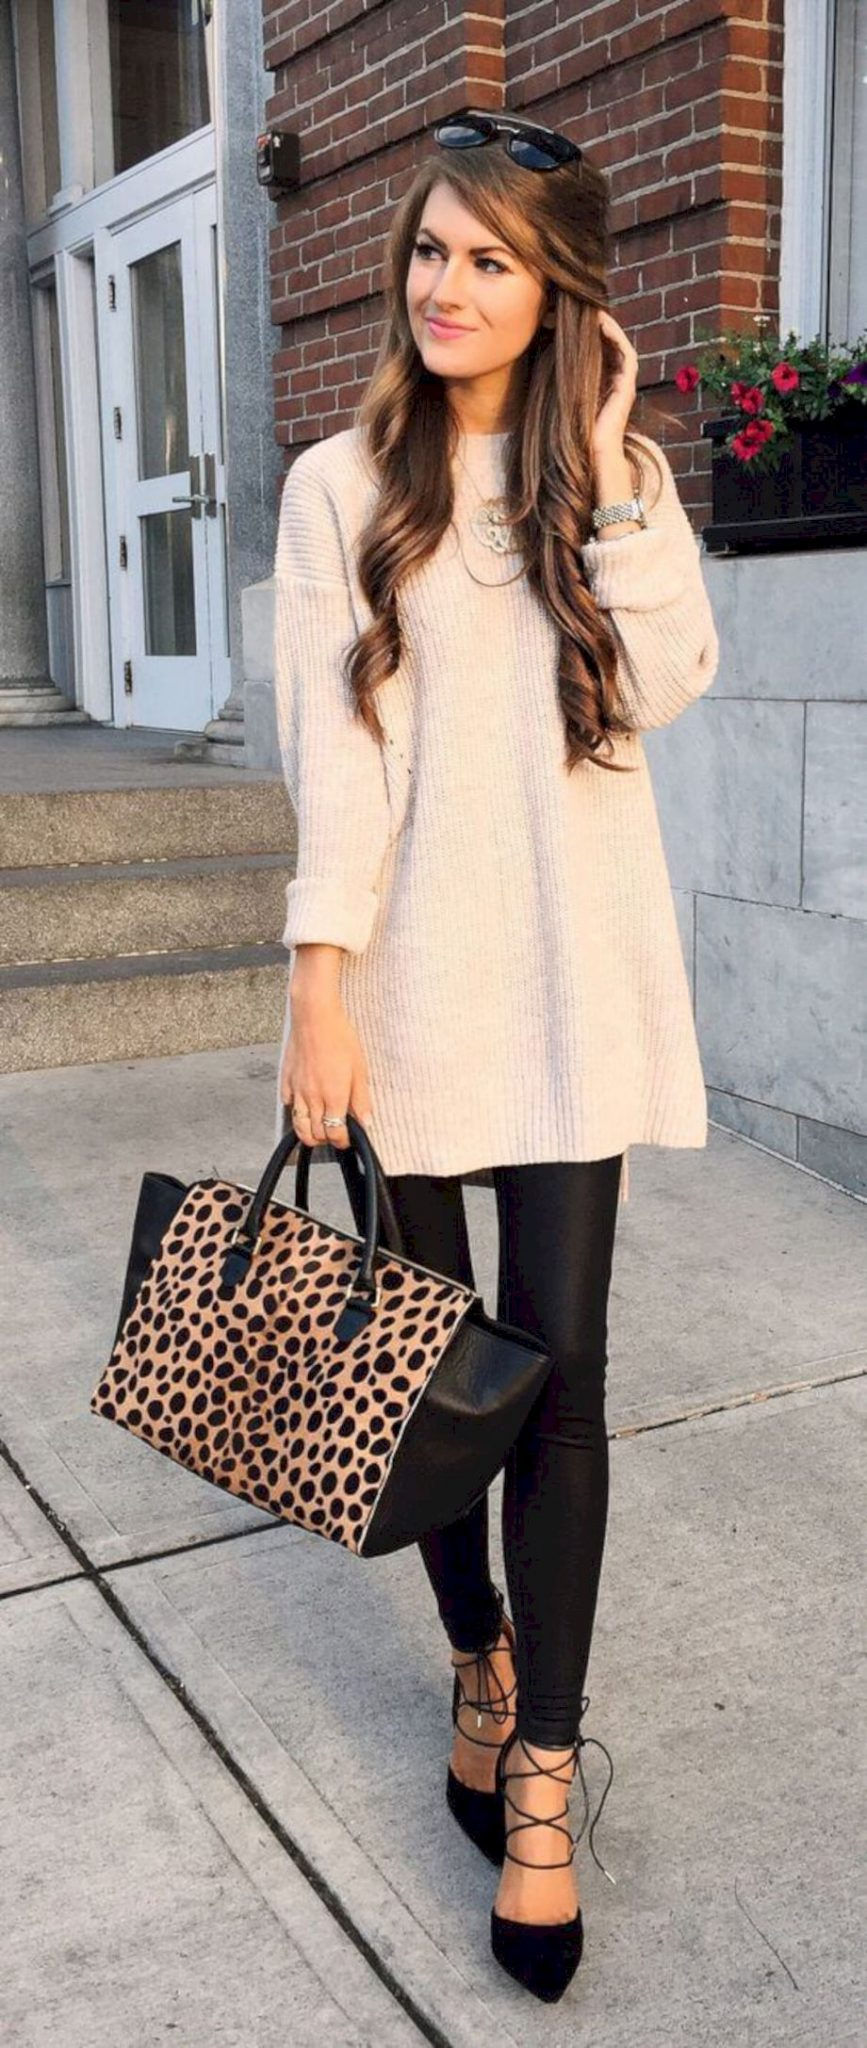 Outfits With Leggings 16 Fashion Best